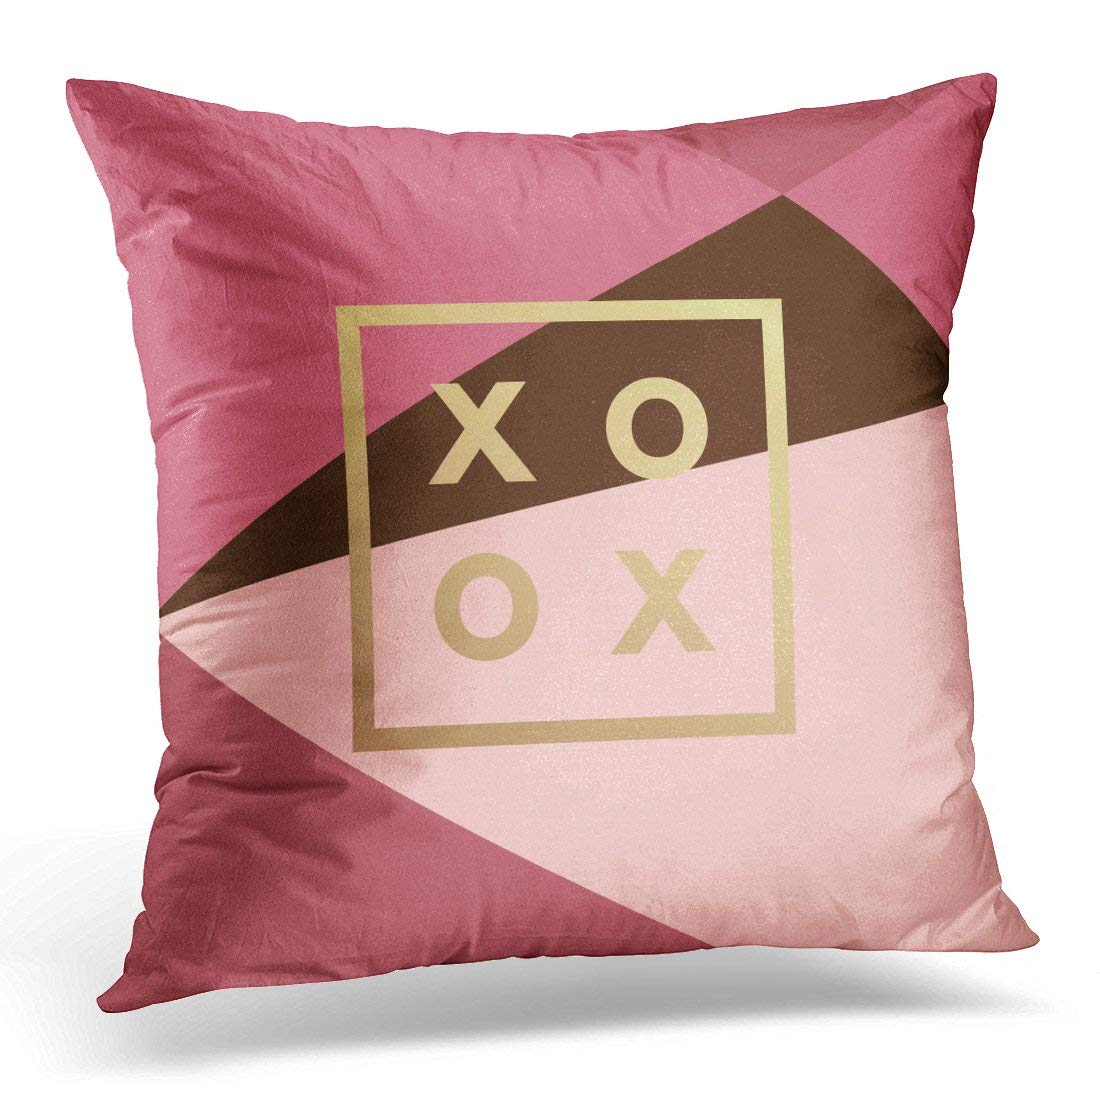 USART Luxury Romantic Love XOXO Gold Minimal in on Geometric Vintage Modern Label Outline Trend Valentine Day Pillow Case Pillow Cover 18x18 inch